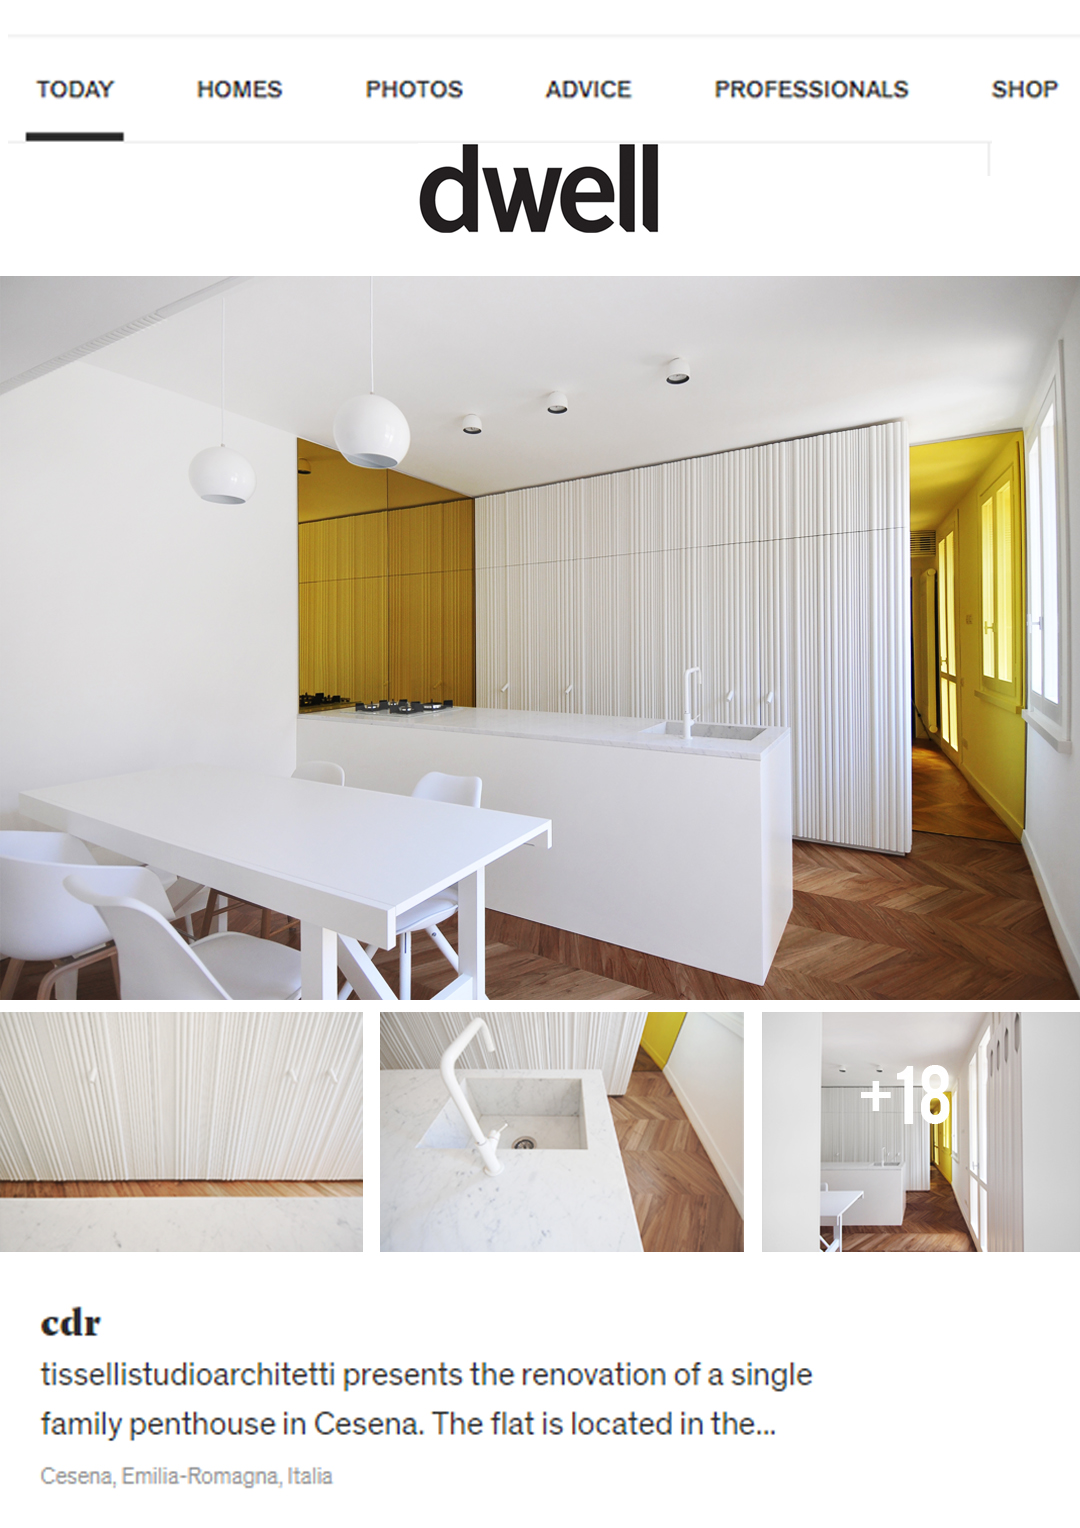 Arredamento Emilia Romagna tissellistudio single family penthouse in cesena, published